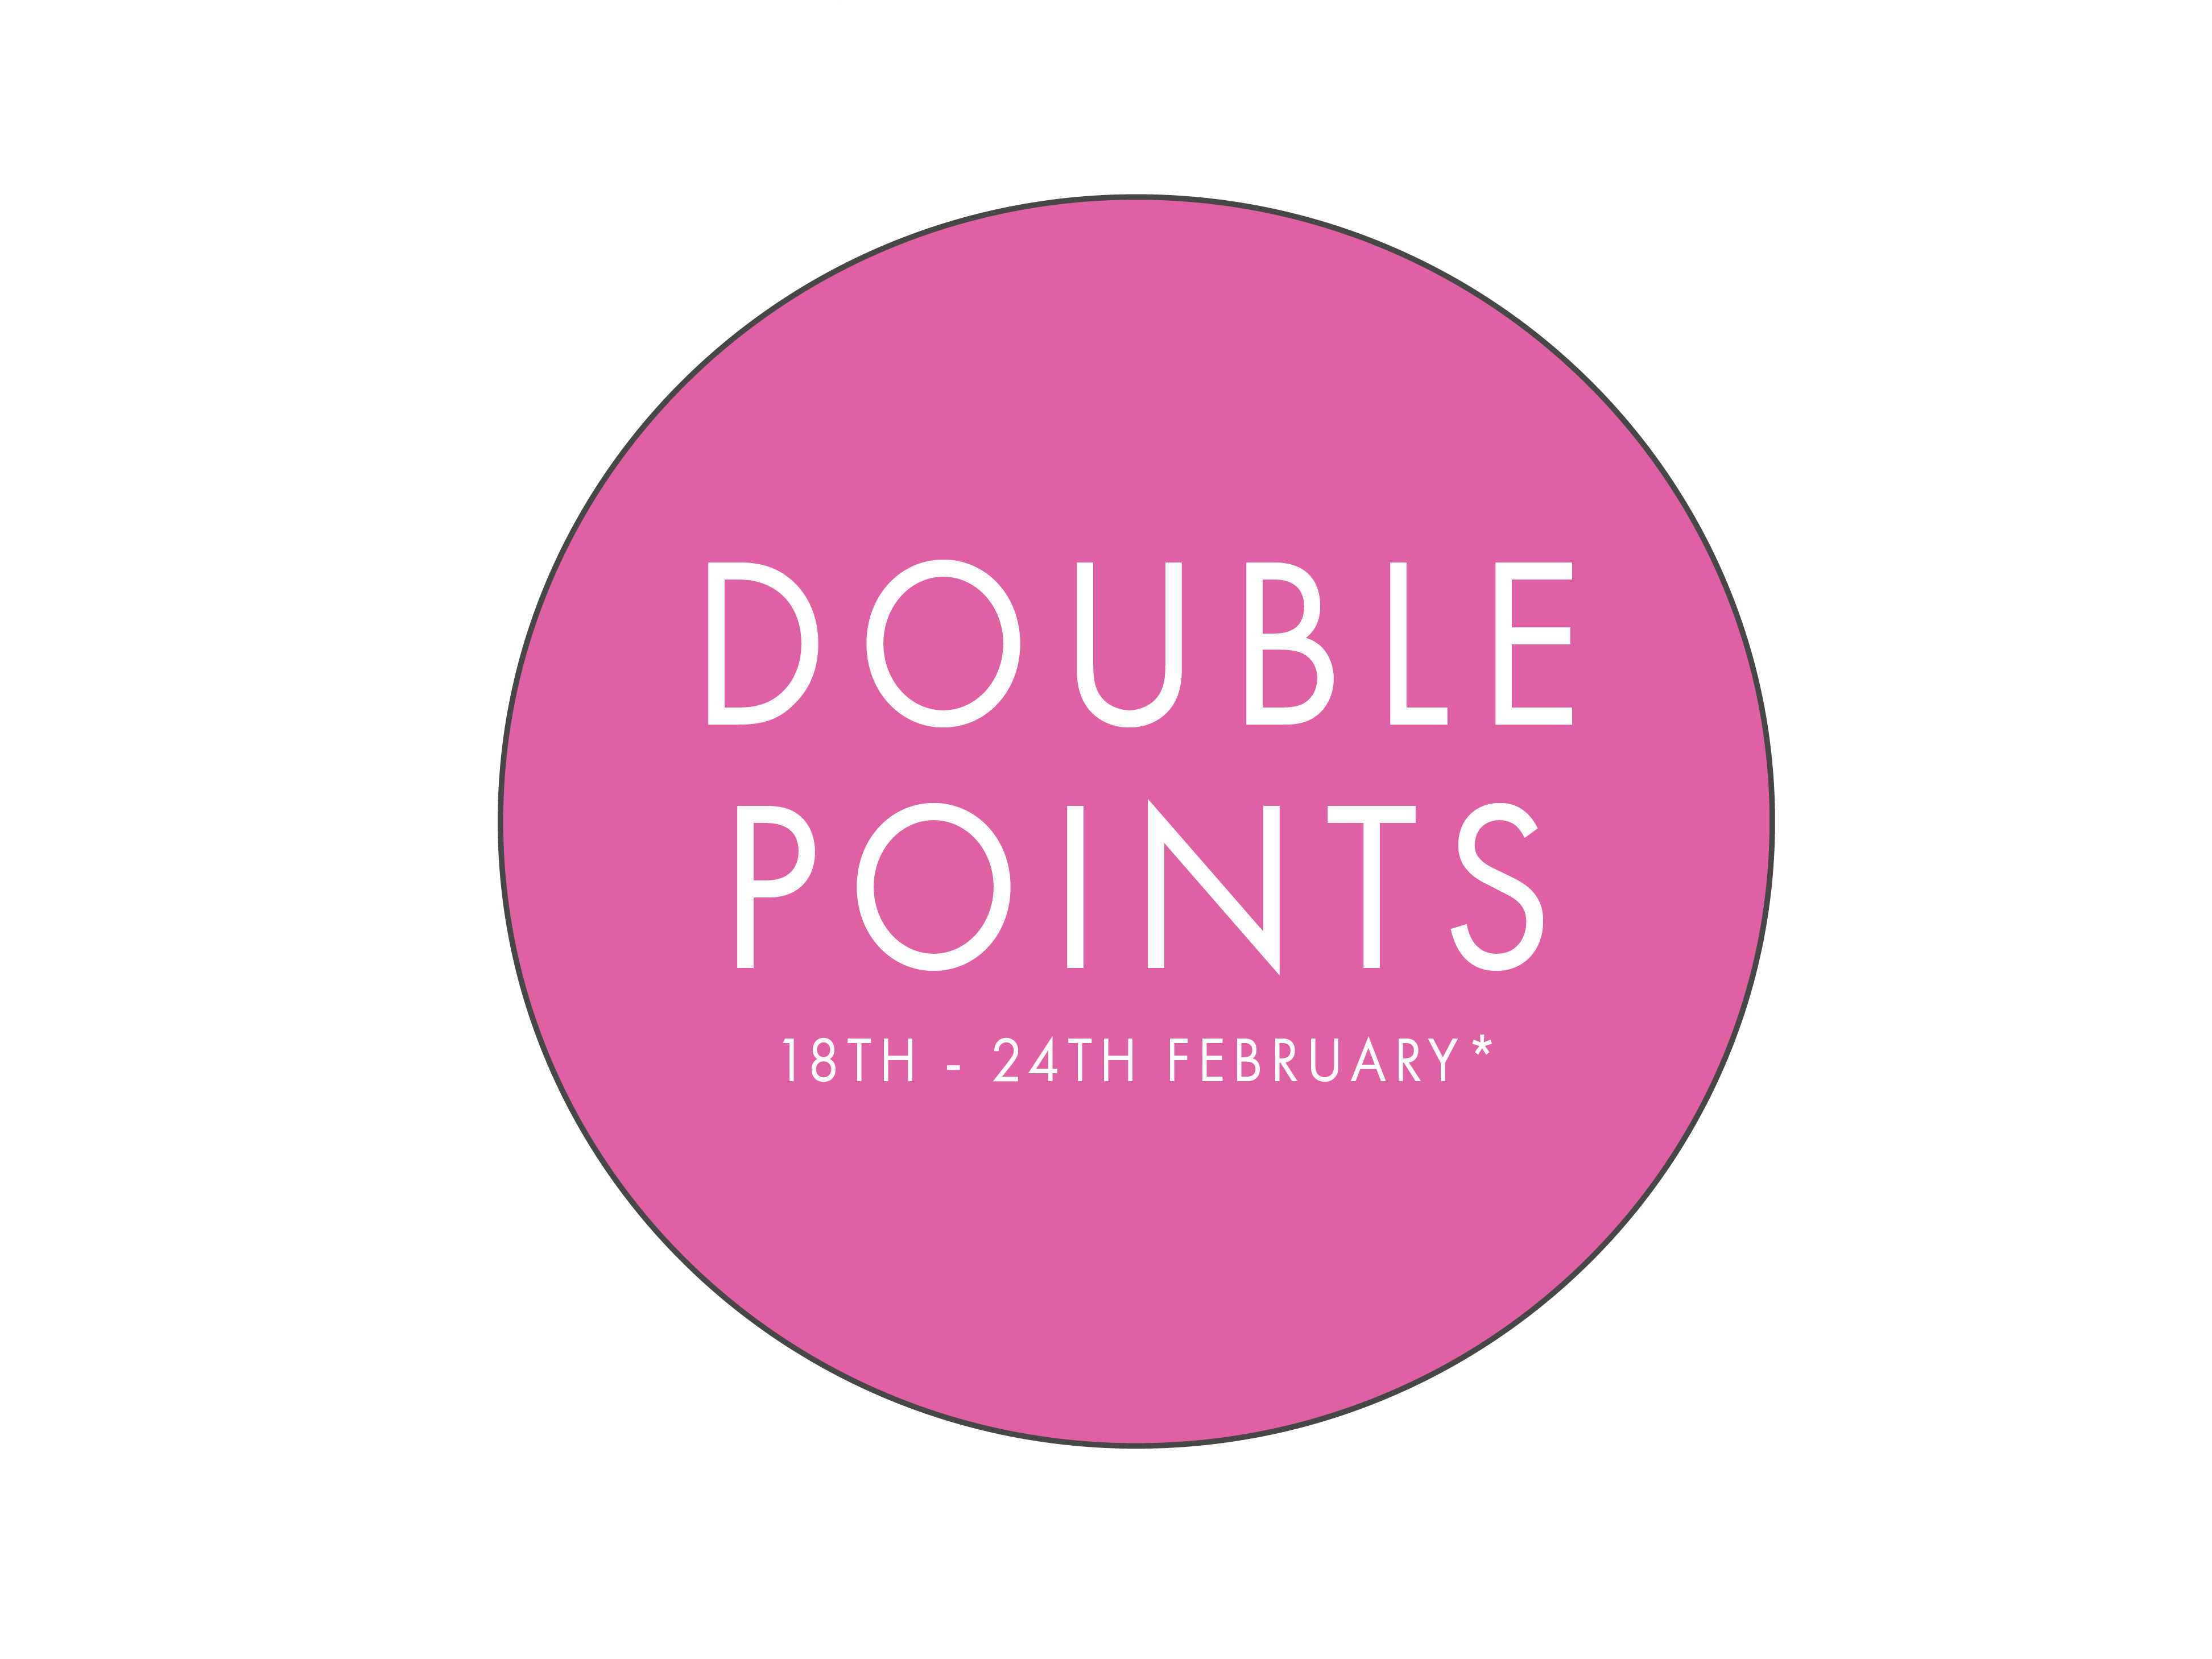 Enjoy double points with any jewellery purchase from our jewellery department during the event dates.